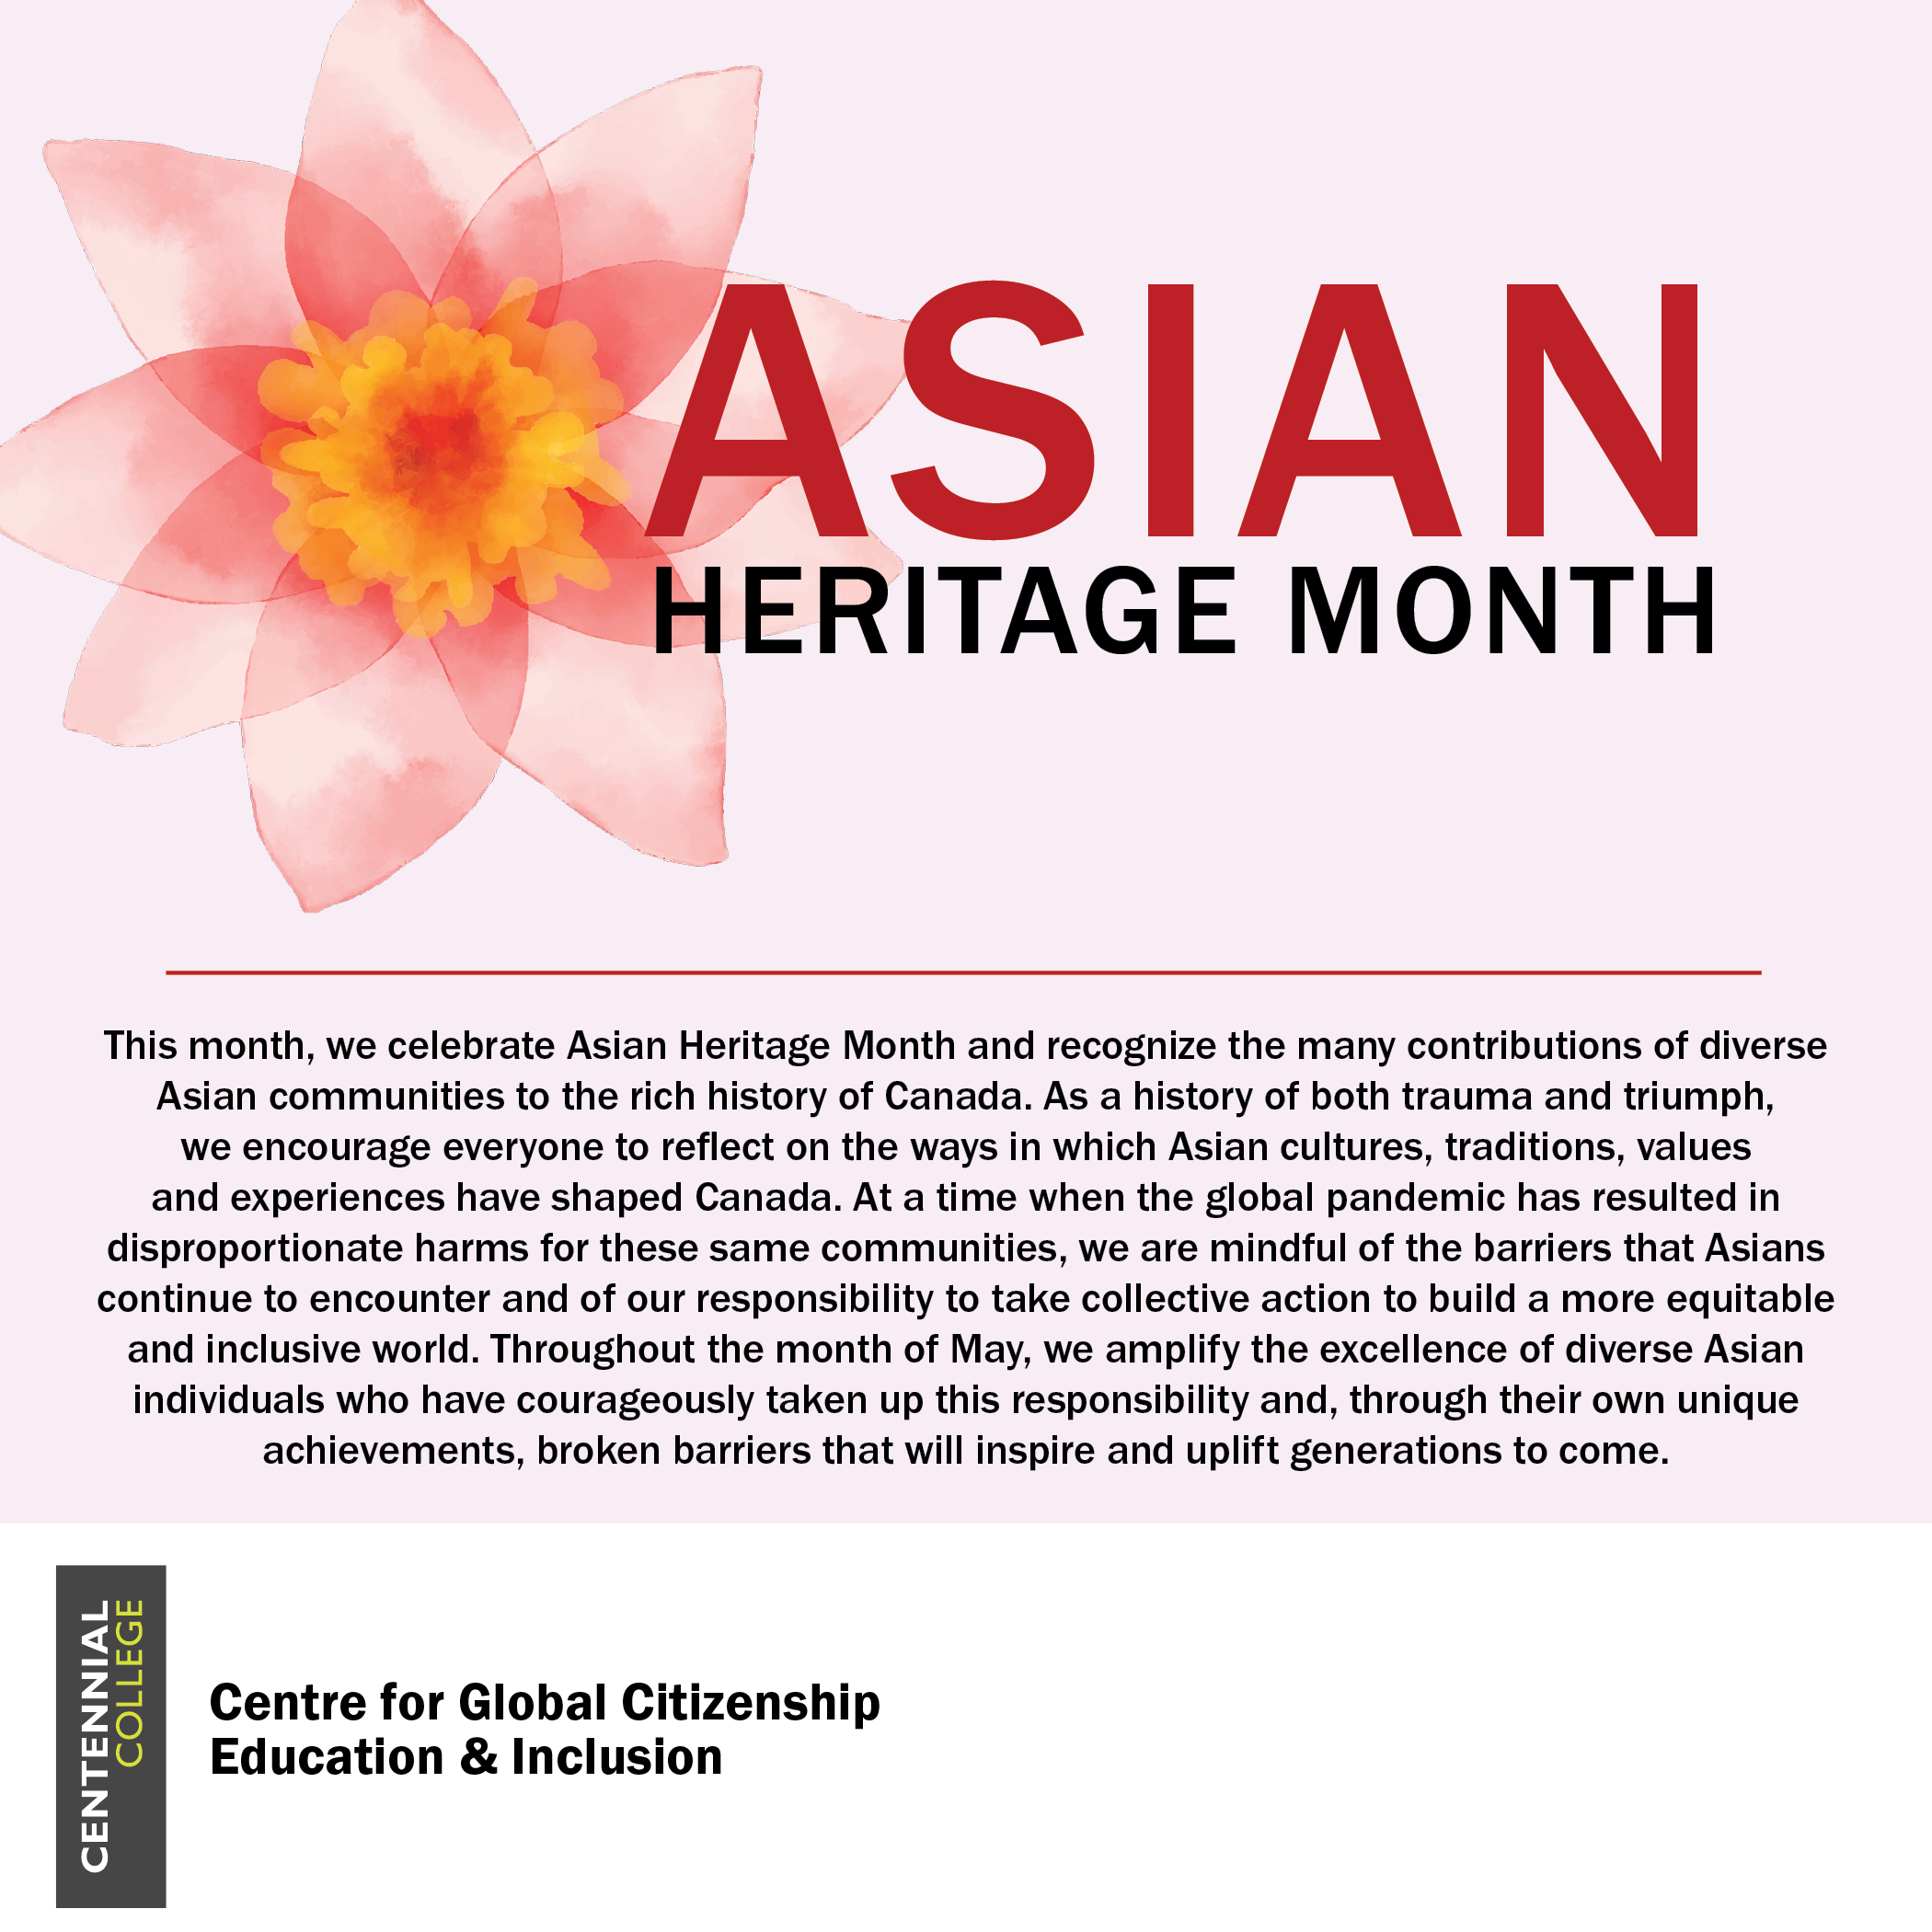 This month, we celebrate Asian Heritage Month and recognize the many contributions of diverse Asian communities to the rich history of Canada. As a history of both trauma and triumph, we encourage everyone to reflect on the ways in which Asian cultures, traditions, values and experiences have shaped Canada. At a time when the global pandemic has resulted in disproportionate harms for these same communities, we are mindful of the barriers that Asians continue to encounter and of our responsibility to take collective action to build a more equitable and inclusive world. Throughout the month of May, we amplify the excellence of diverse Asian individuals who have courageously taken up this responsibility and, through their own unique achievements, broken barriers that will inspire and uplift generations to come.